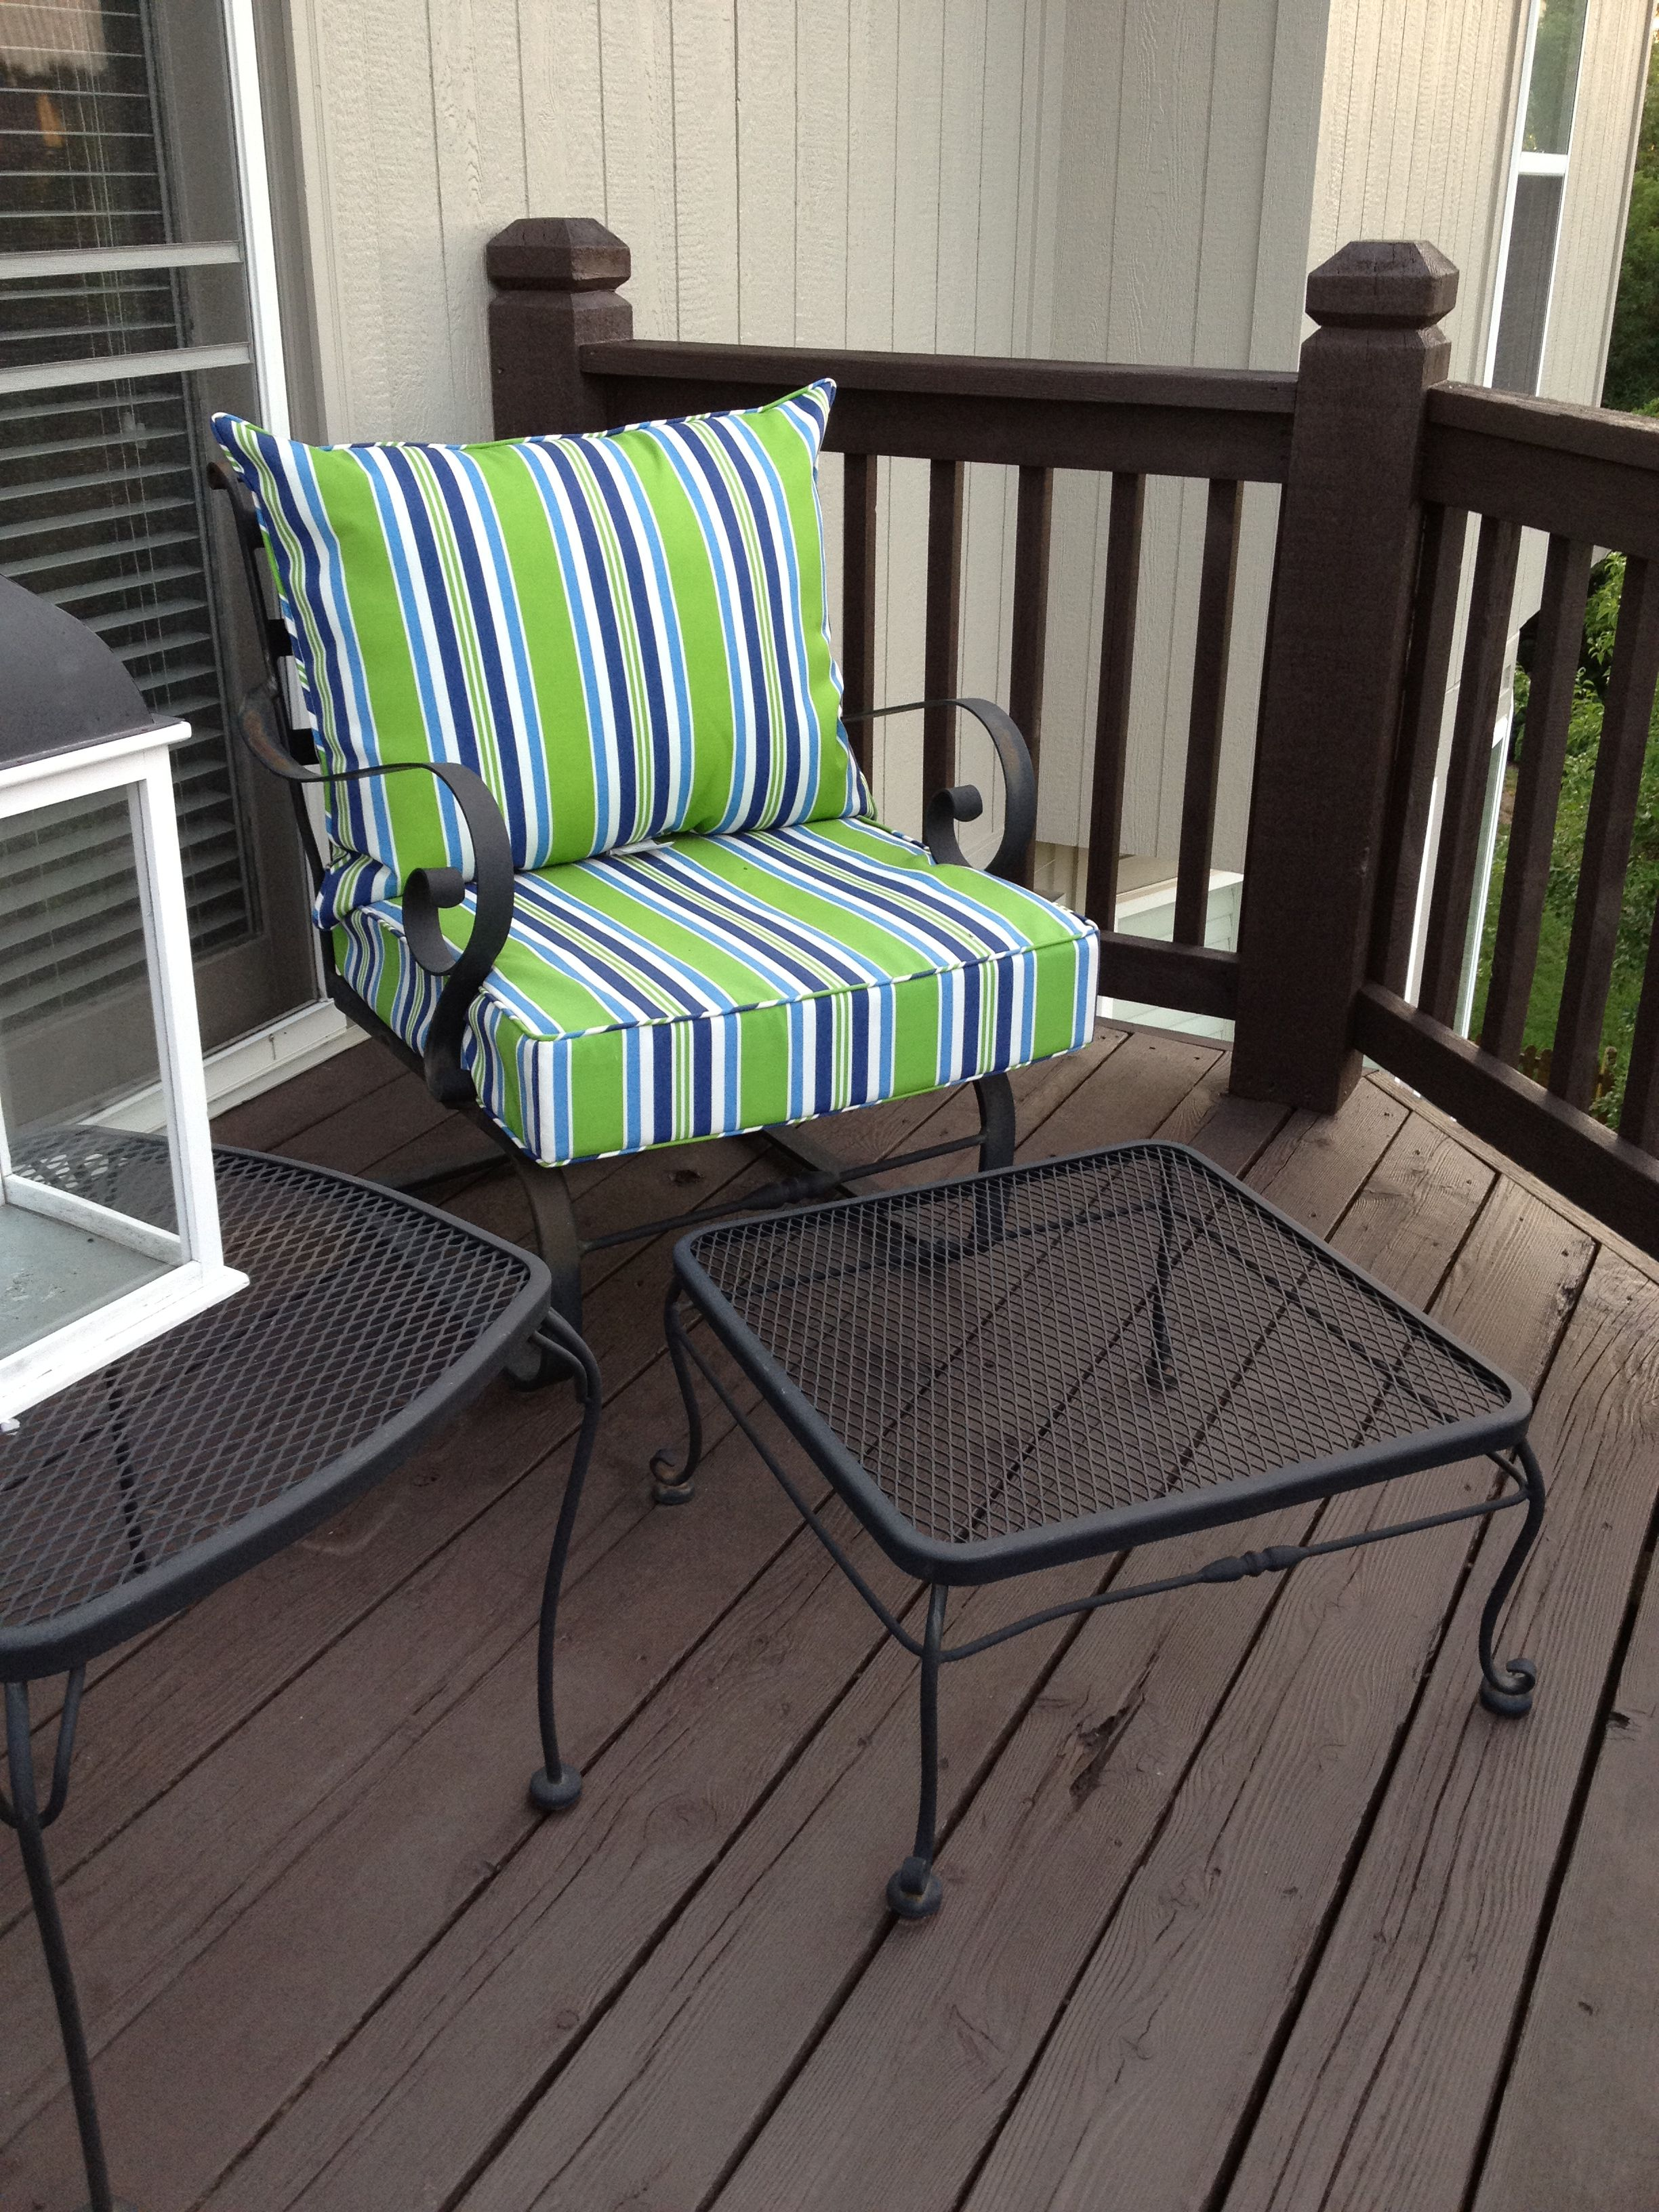 Cabot Cordovan Brown Solid Stain Lowes Deck Pinterest Lowes Decking And Porch